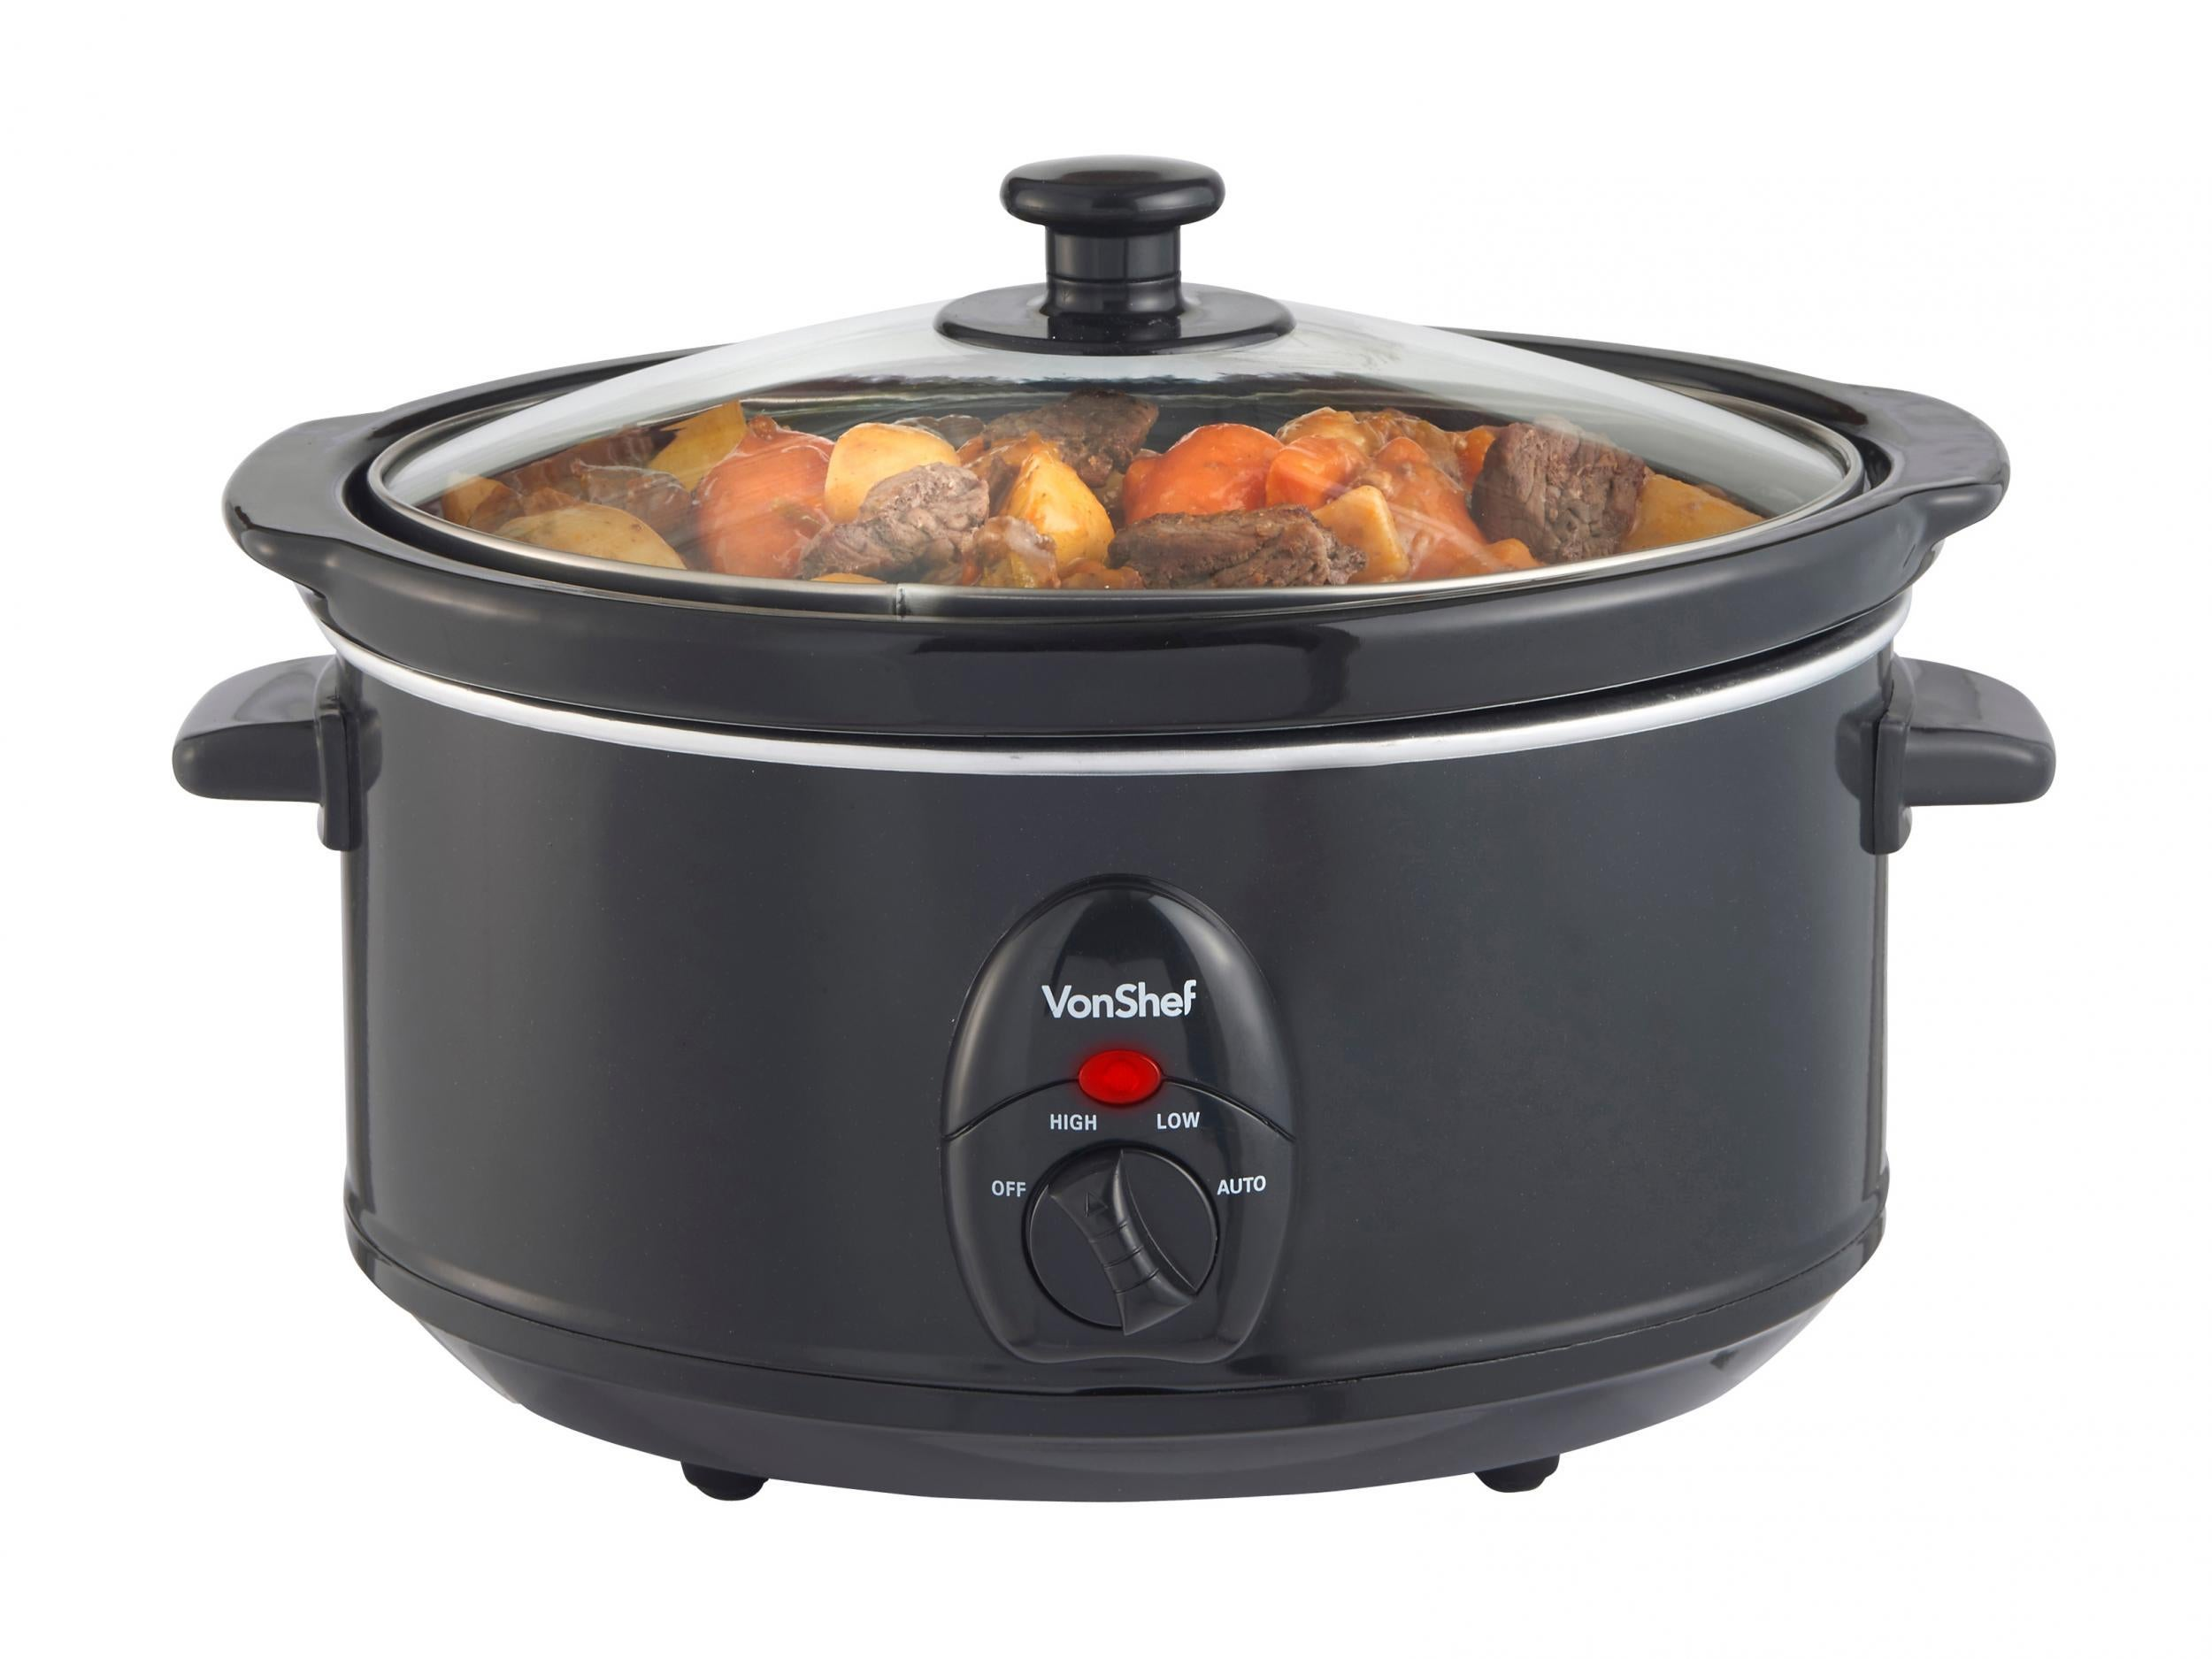 9 Best Slow Cookers The Independent National Rice Cooker Wiring Diagram Index Available In Black Or Silver We Think Looks More Stylish This Feels Well Made And Has Three Settings Of Low Warm High